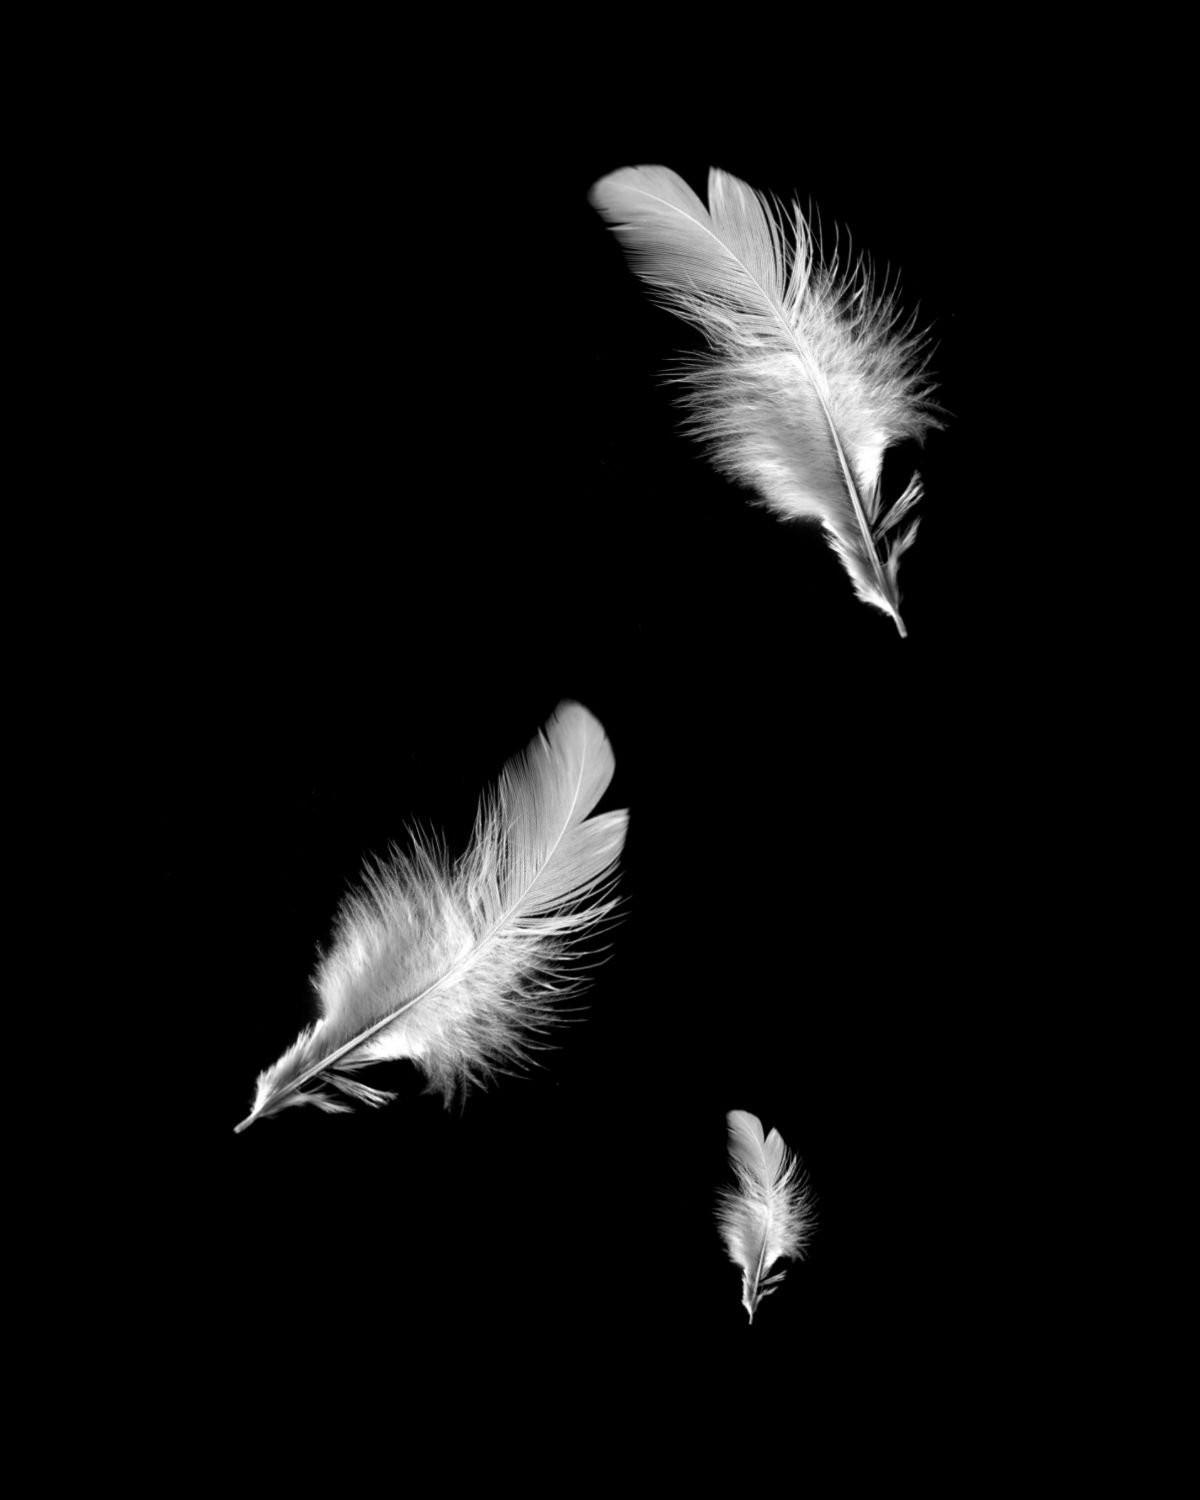 image result for silver feathers falling on a black